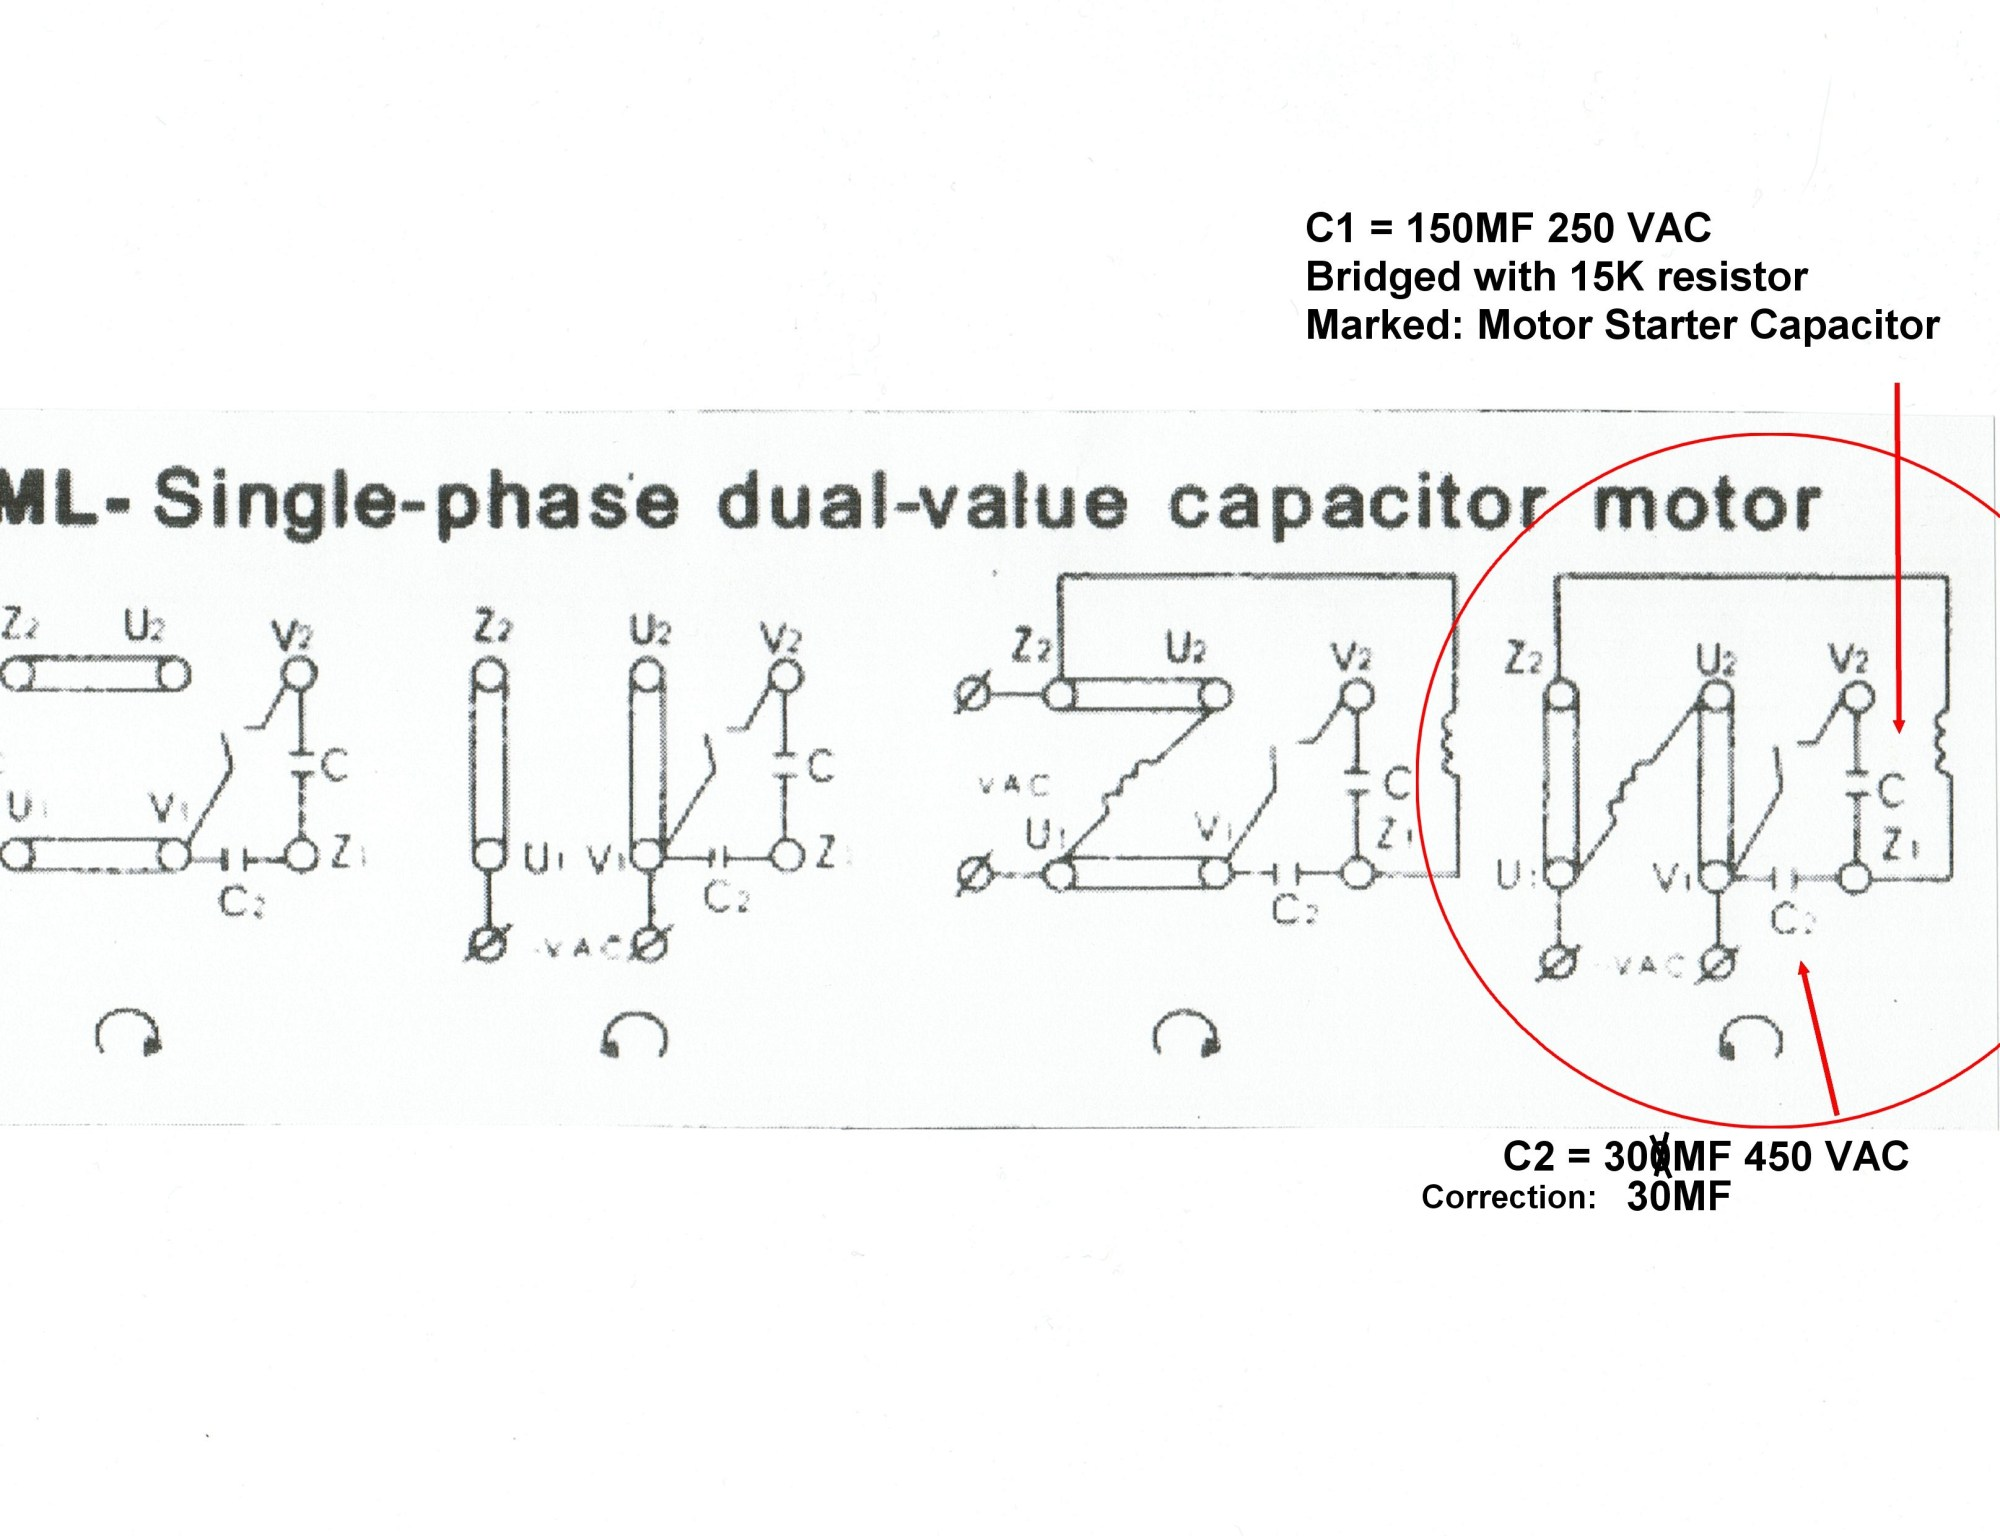 hight resolution of solved slow start 220v single phase induction motor single phase motor winding diagram 240v single phase capacitor motor diagram